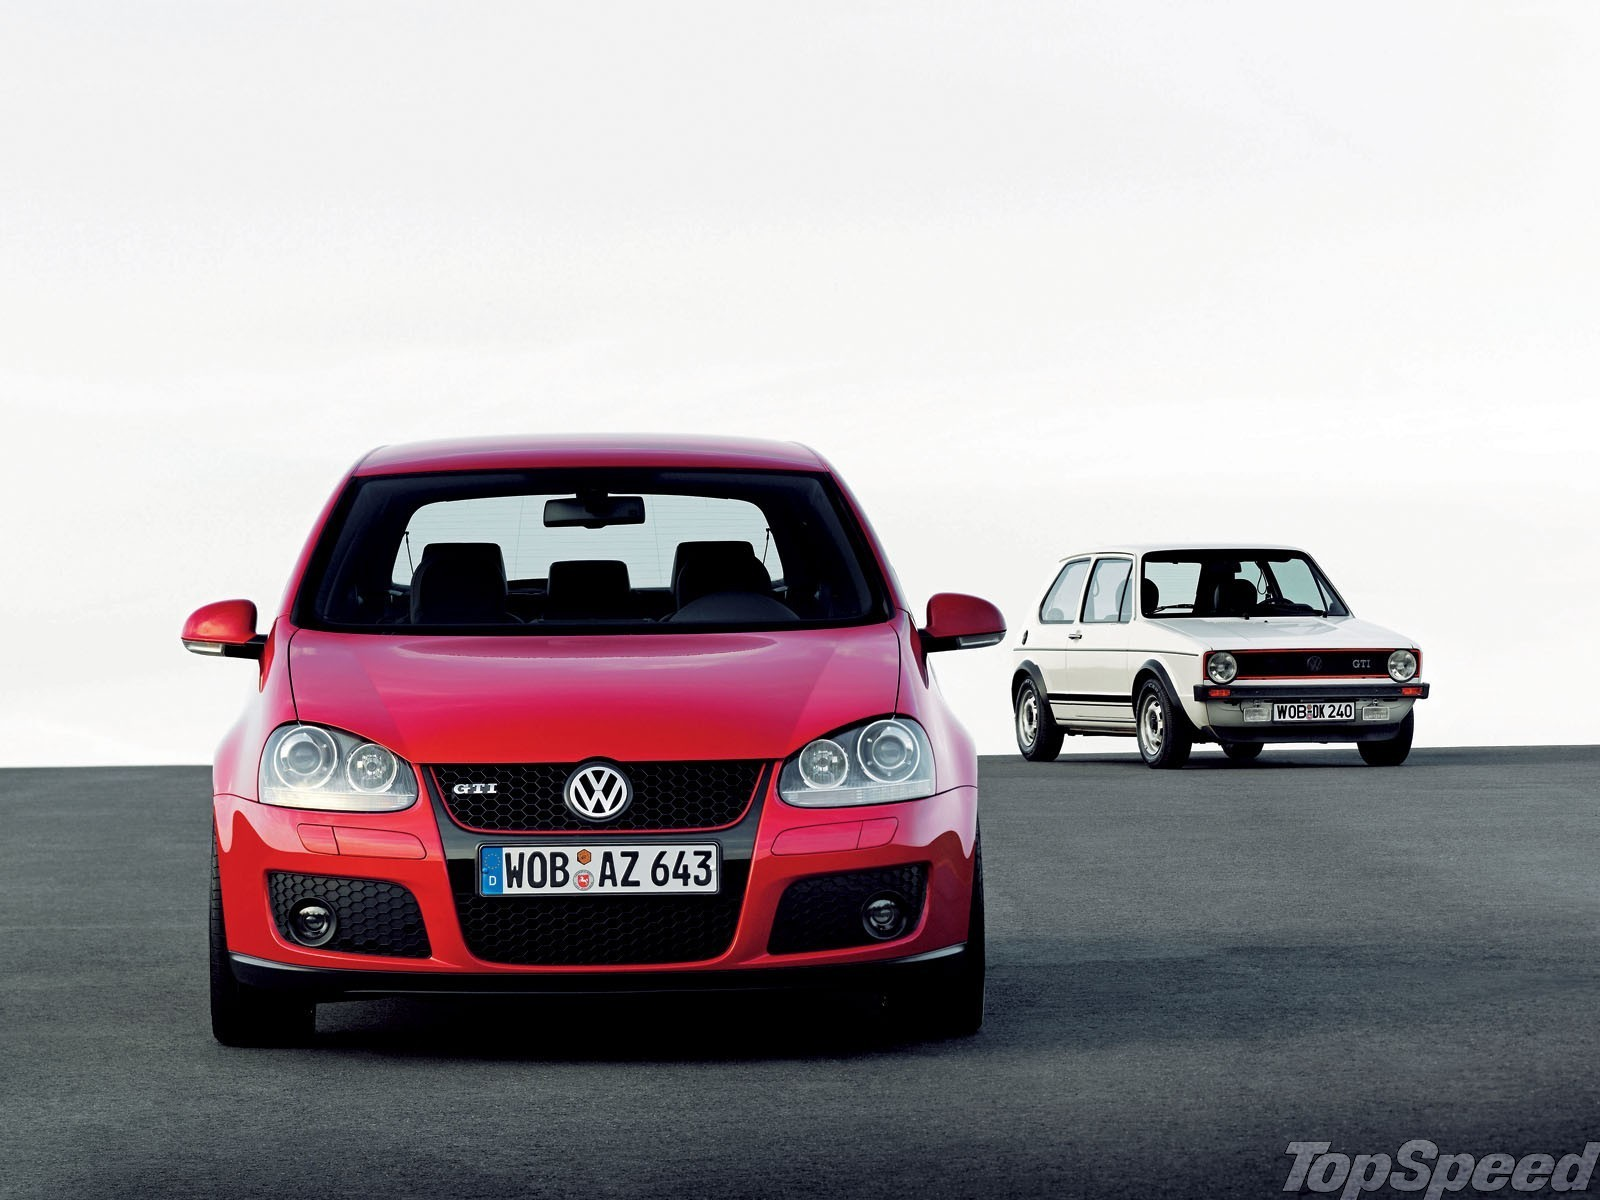 2006 Volkswagen Gti V Top Speed Mk5 Circuit The Best Choice For Compatibility With Remote Controls